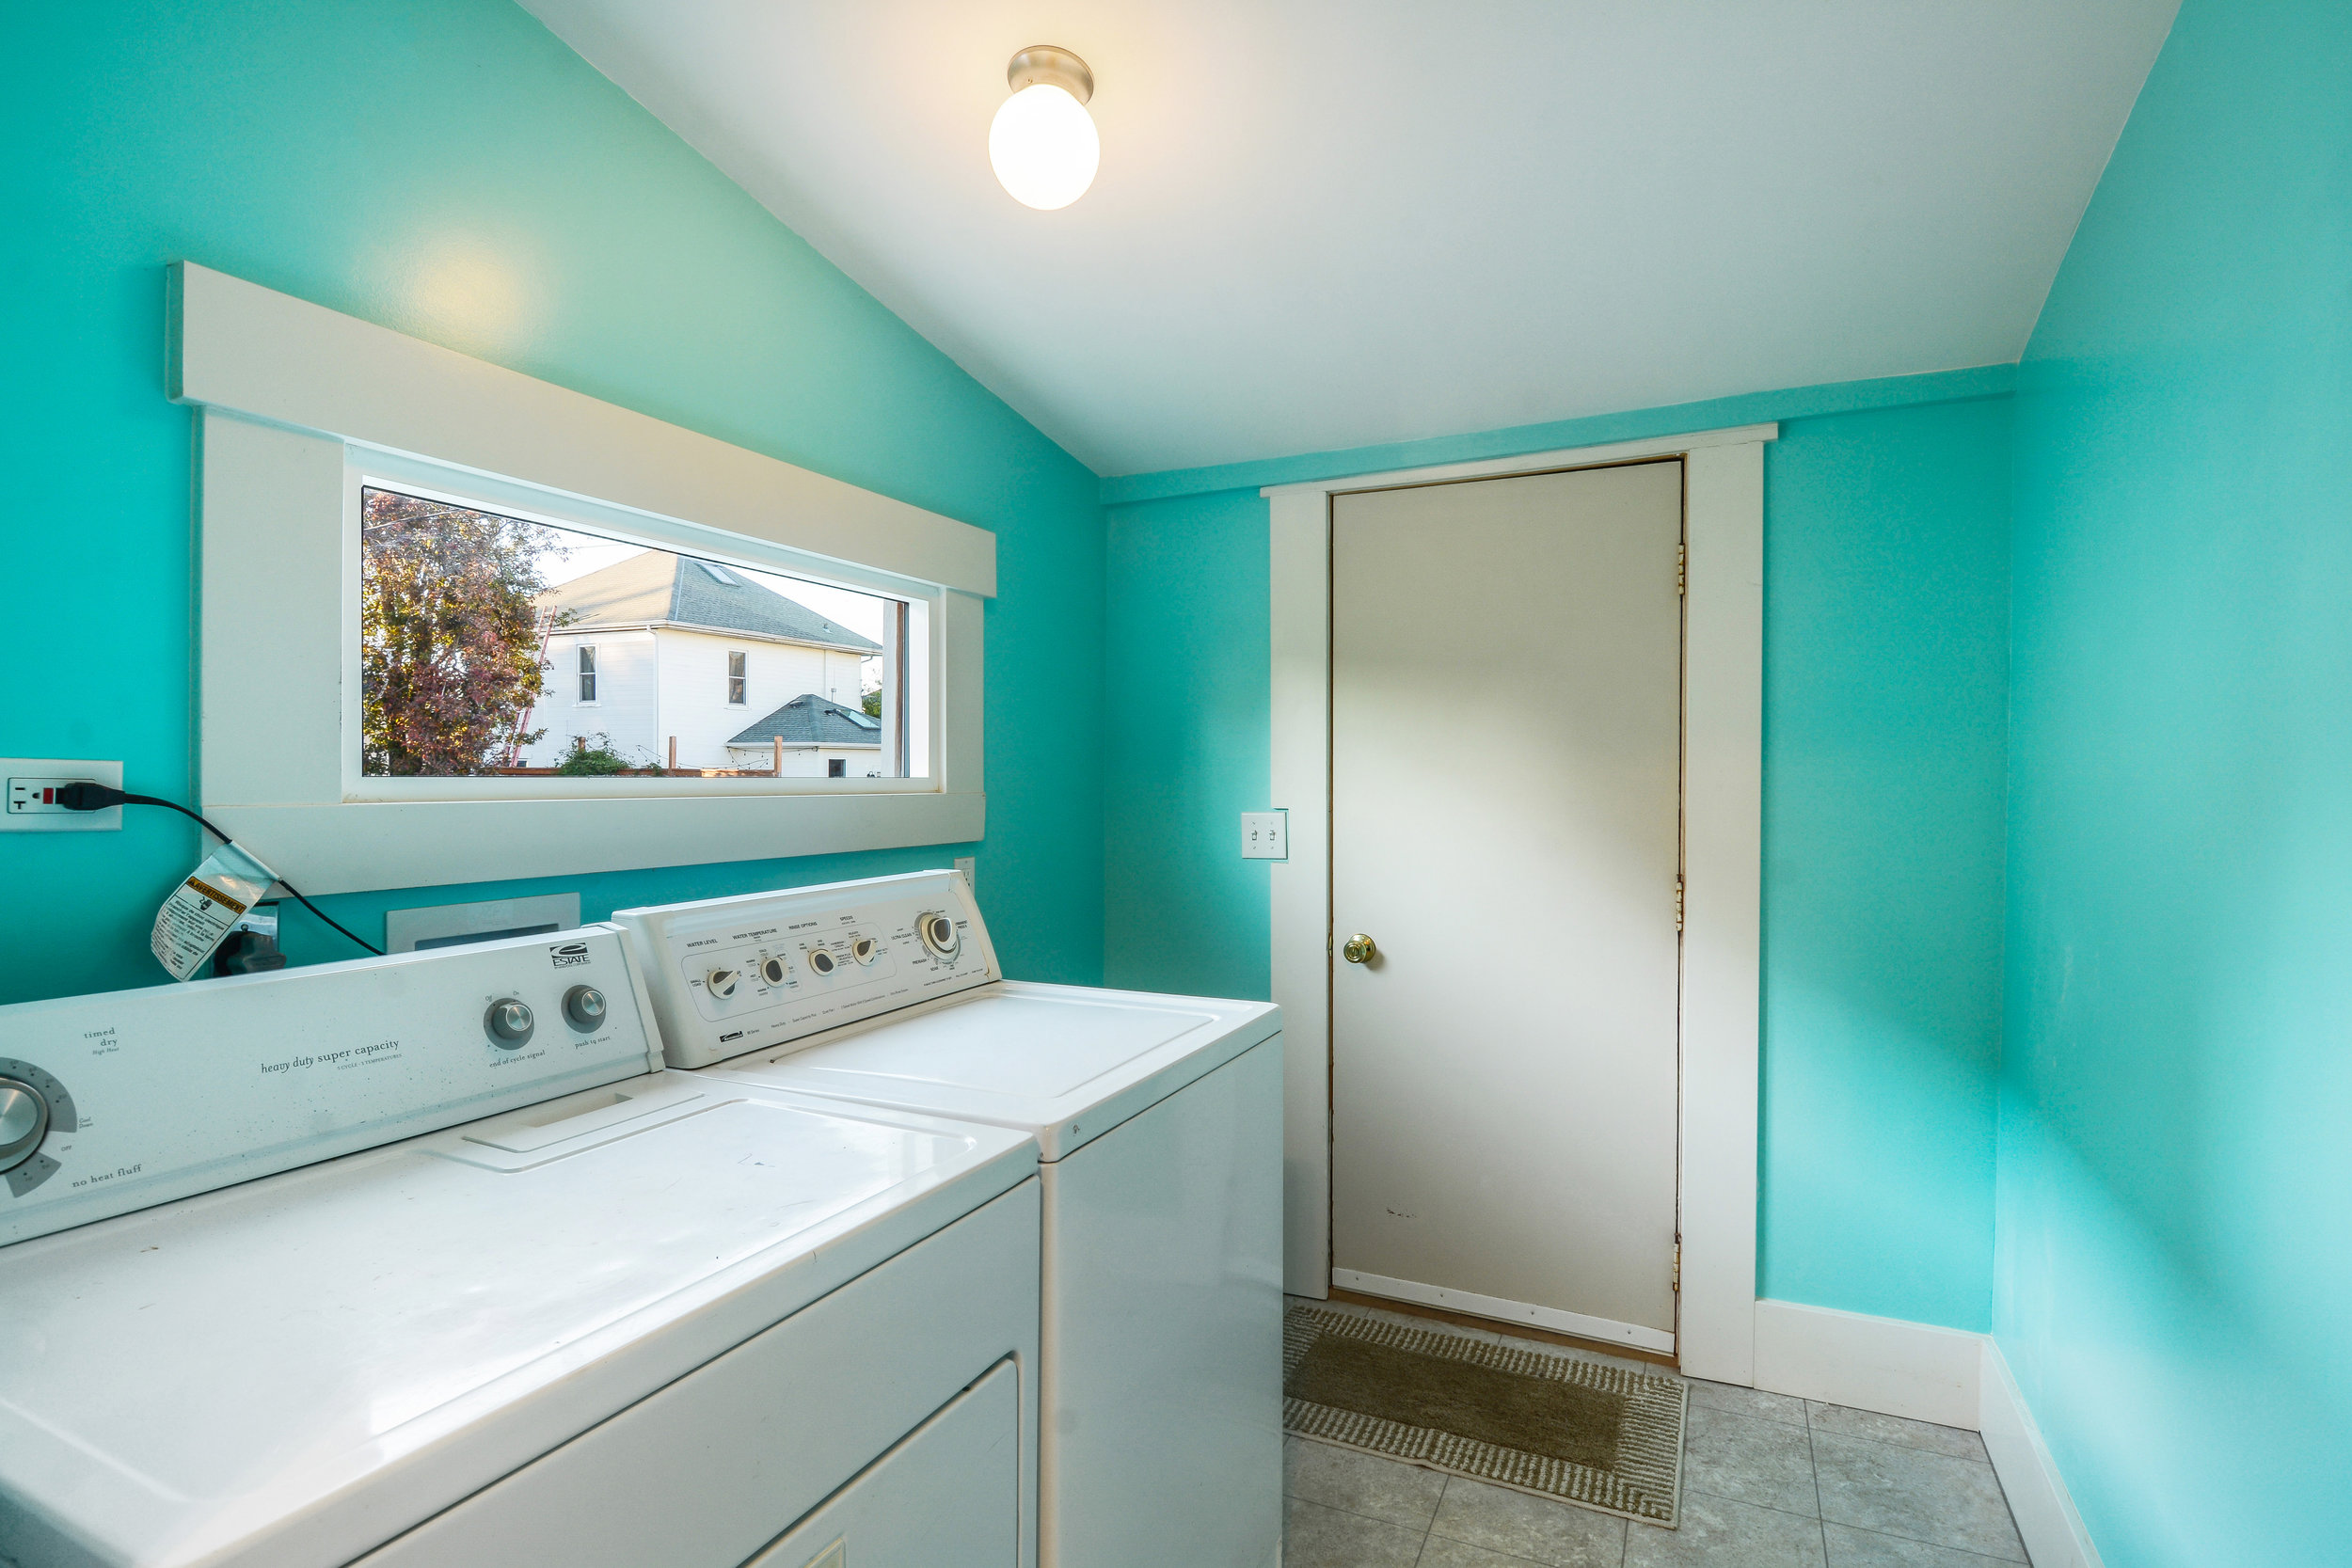 The main floor apartment includes this laundry room entered from the kitchen. The back door exits to the parking area at the back of the lot.